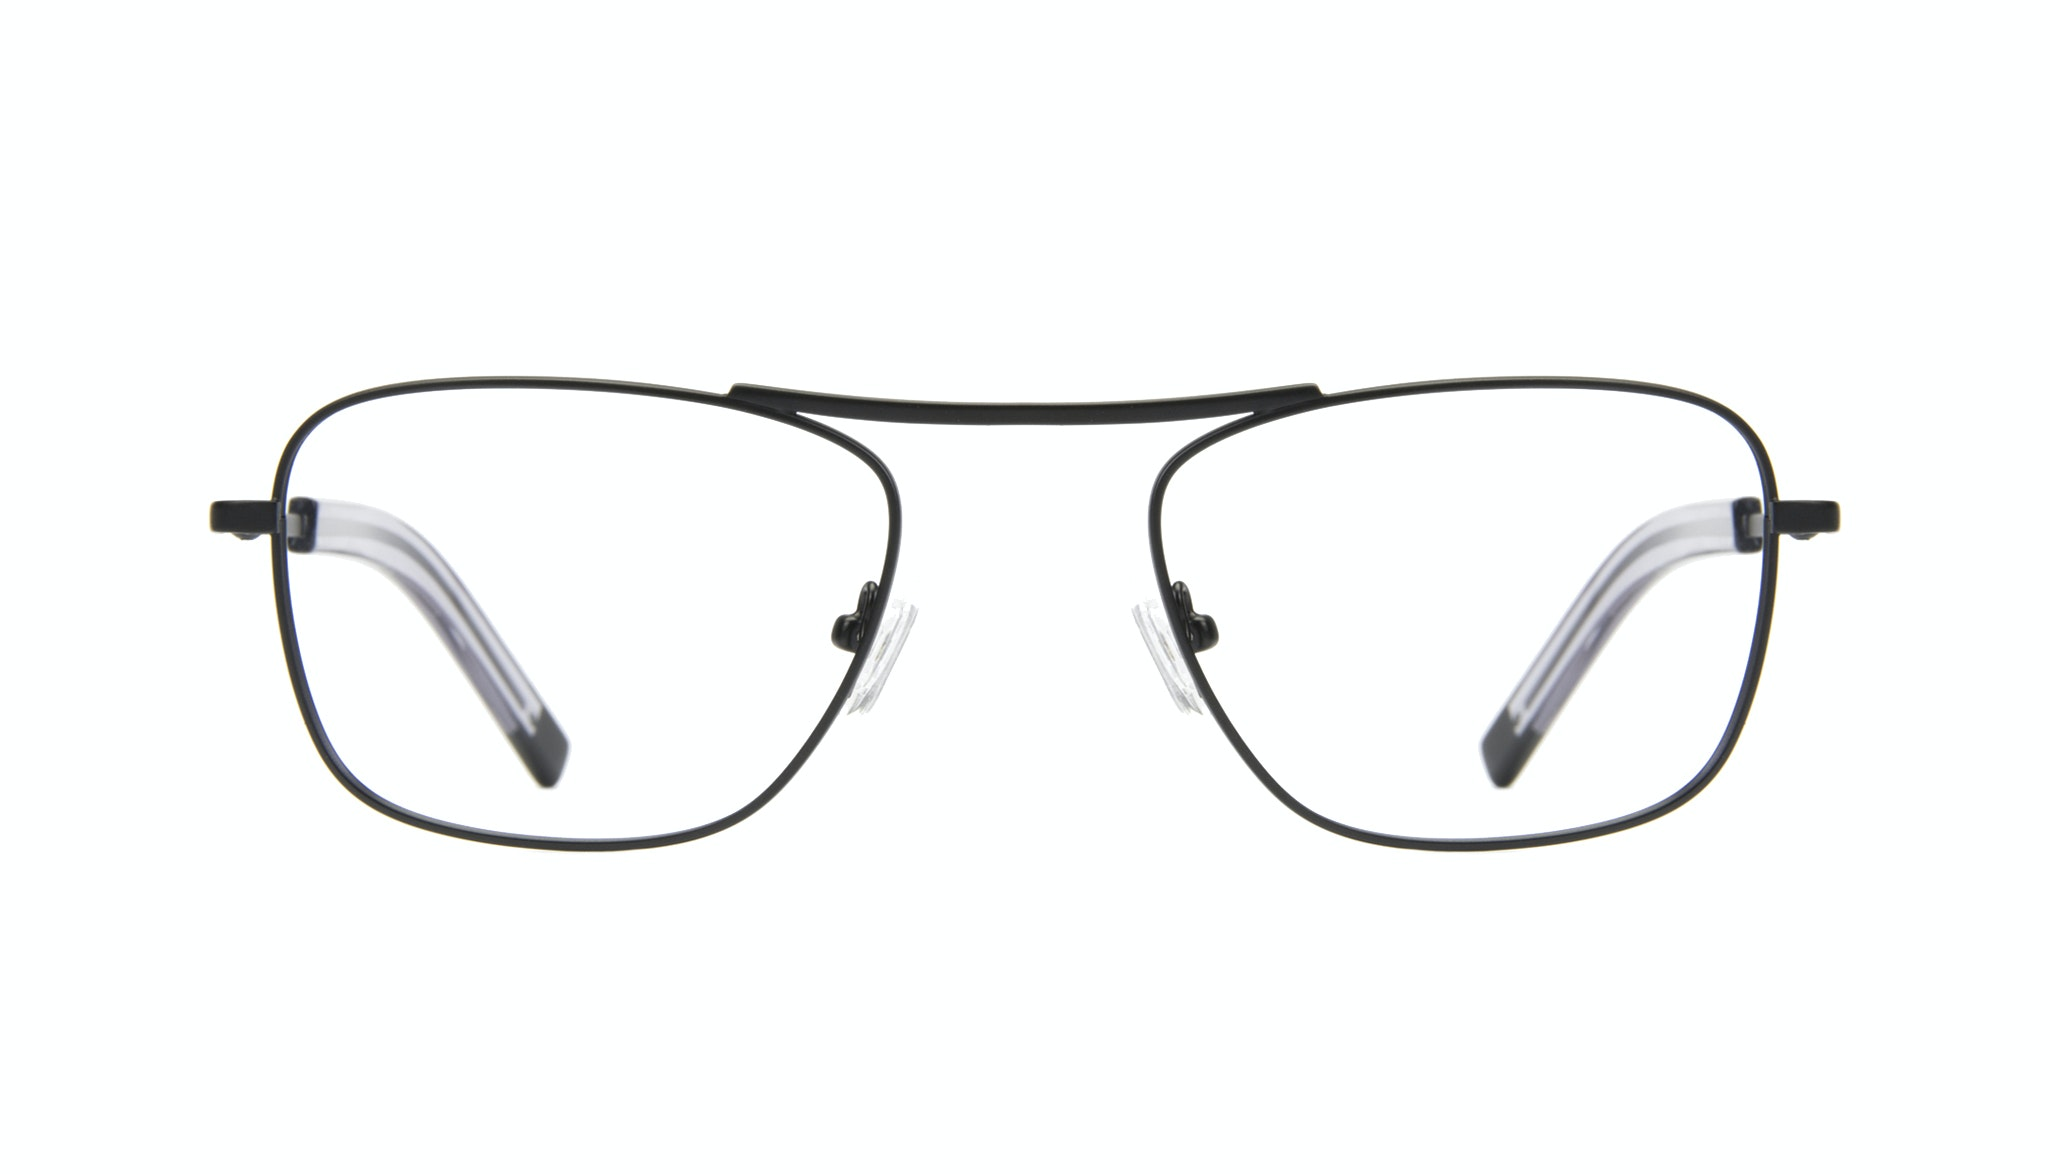 Affordable Fashion Glasses Aviator Rectangle Eyeglasses Men Stark Matt Black